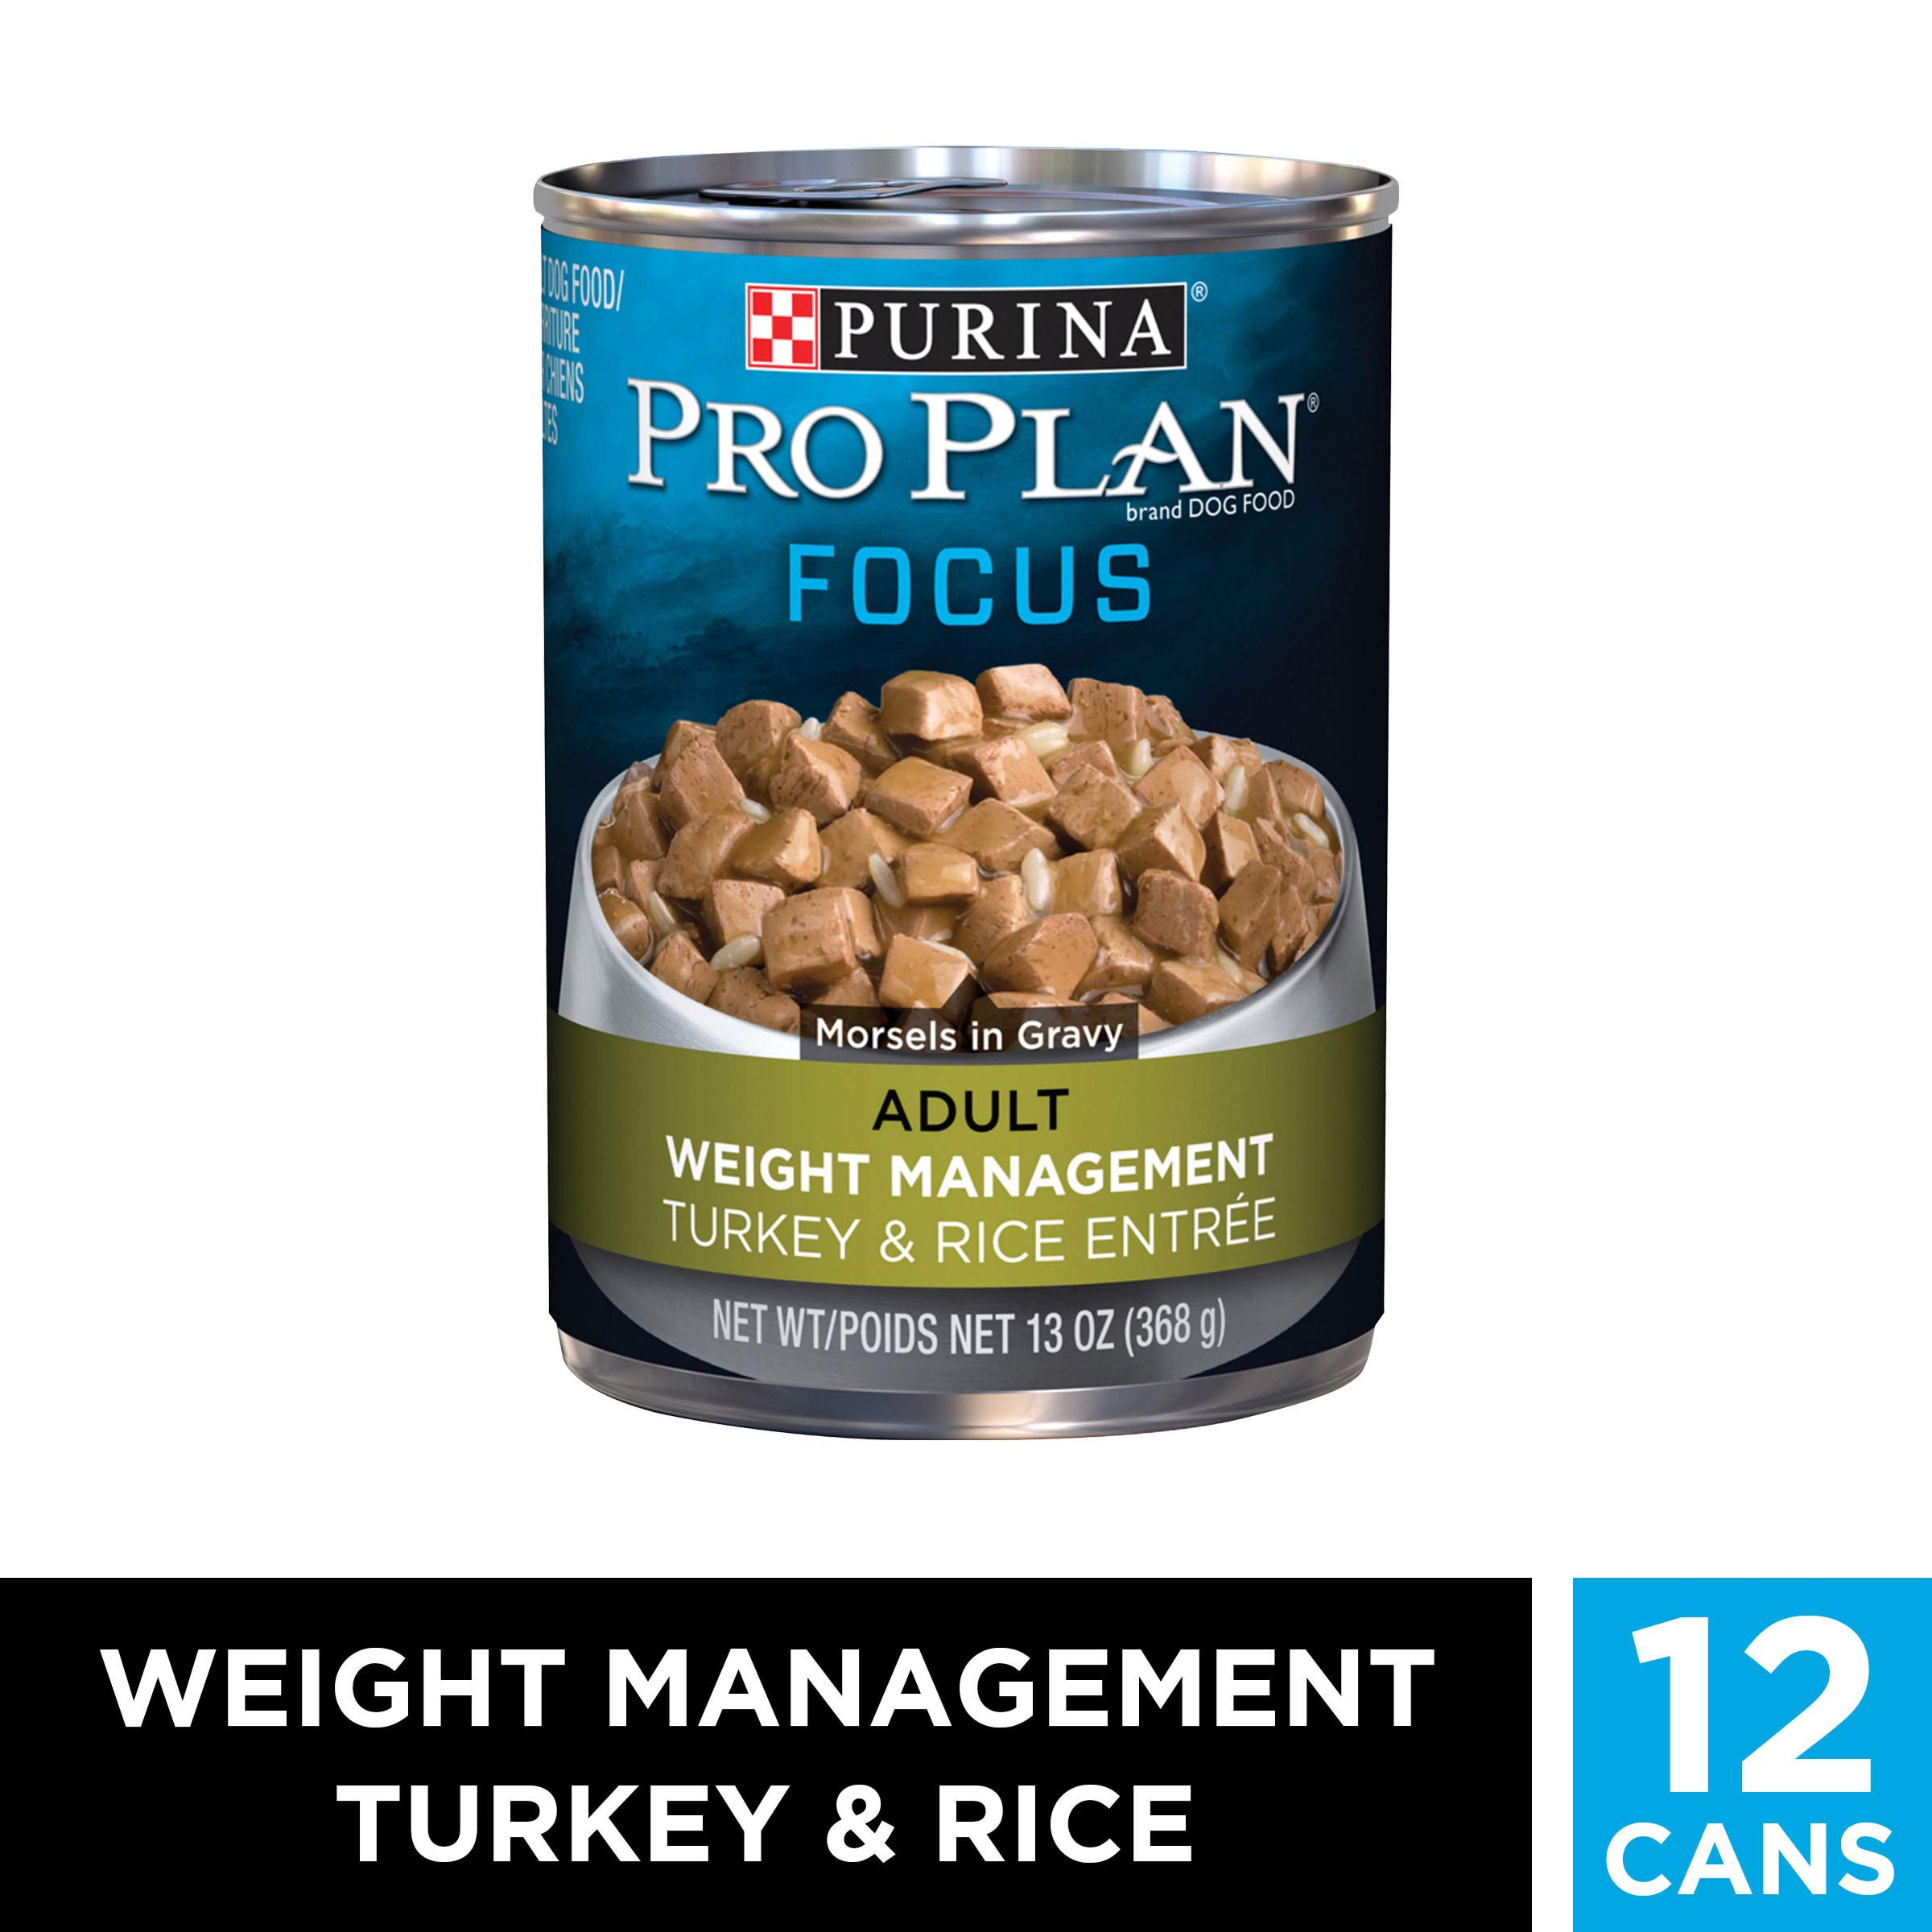 Purina Pro Plan Low Fat, Weight Management Gravy Wet Dog Food, FOCUS Weight Management Turkey & Rice Entree - (12) 13 oz. Cans by PURINA Pro Plan